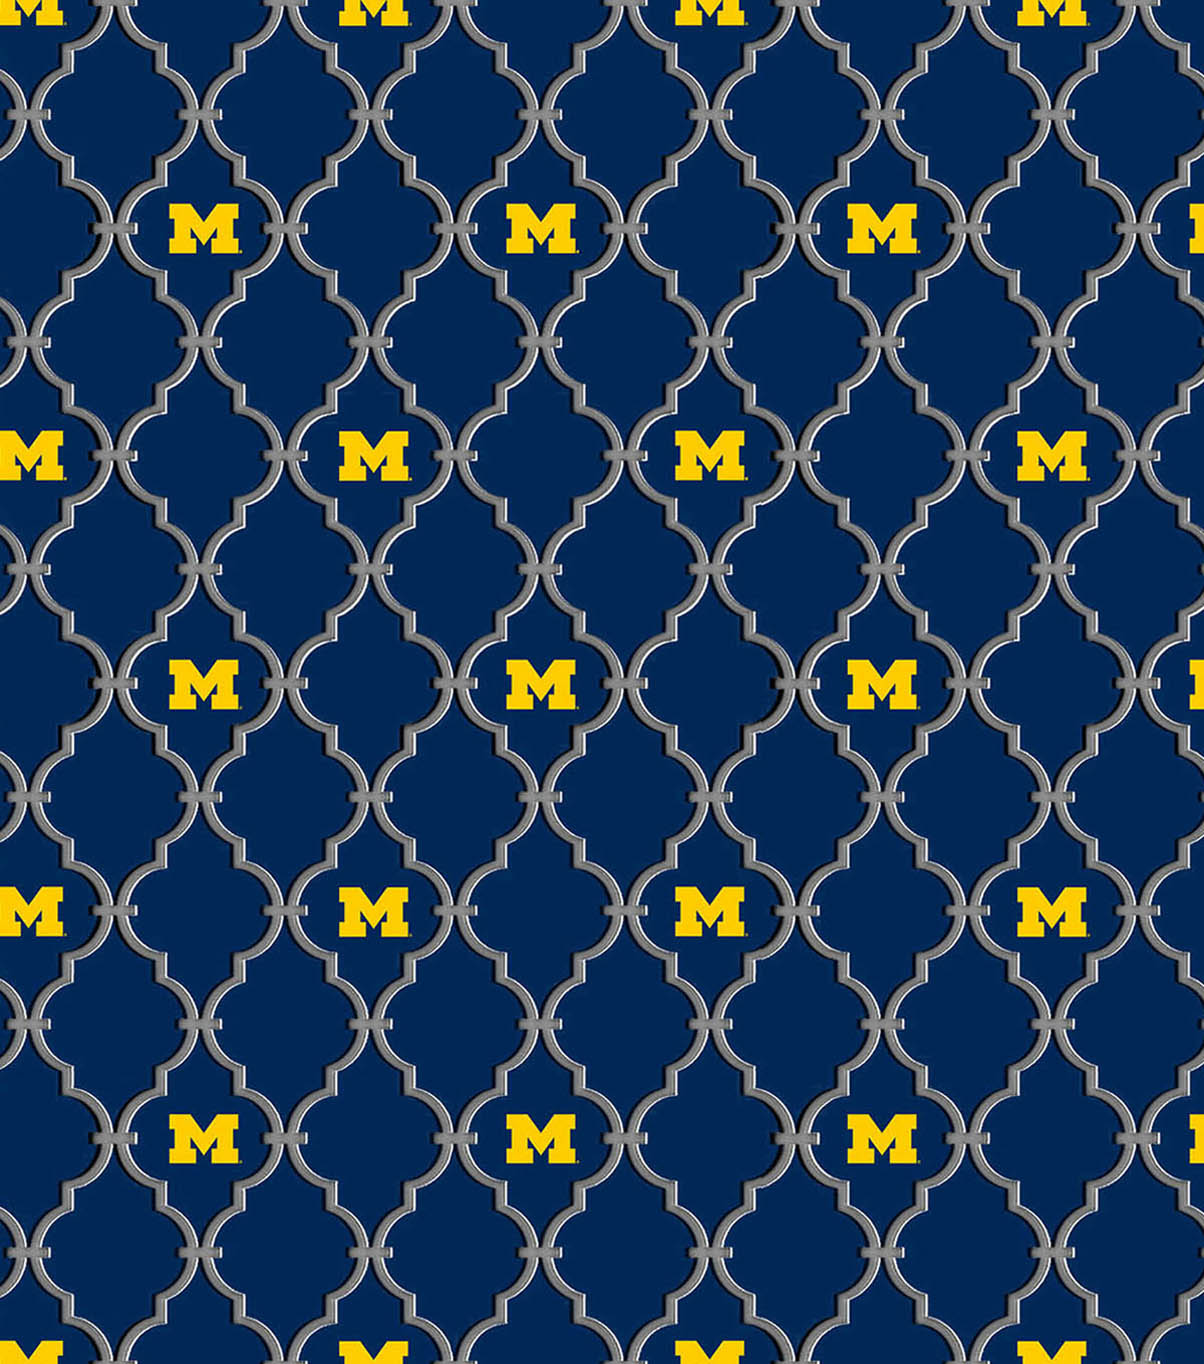 University of Michigan Wolverines Cotton Fabric -Logo